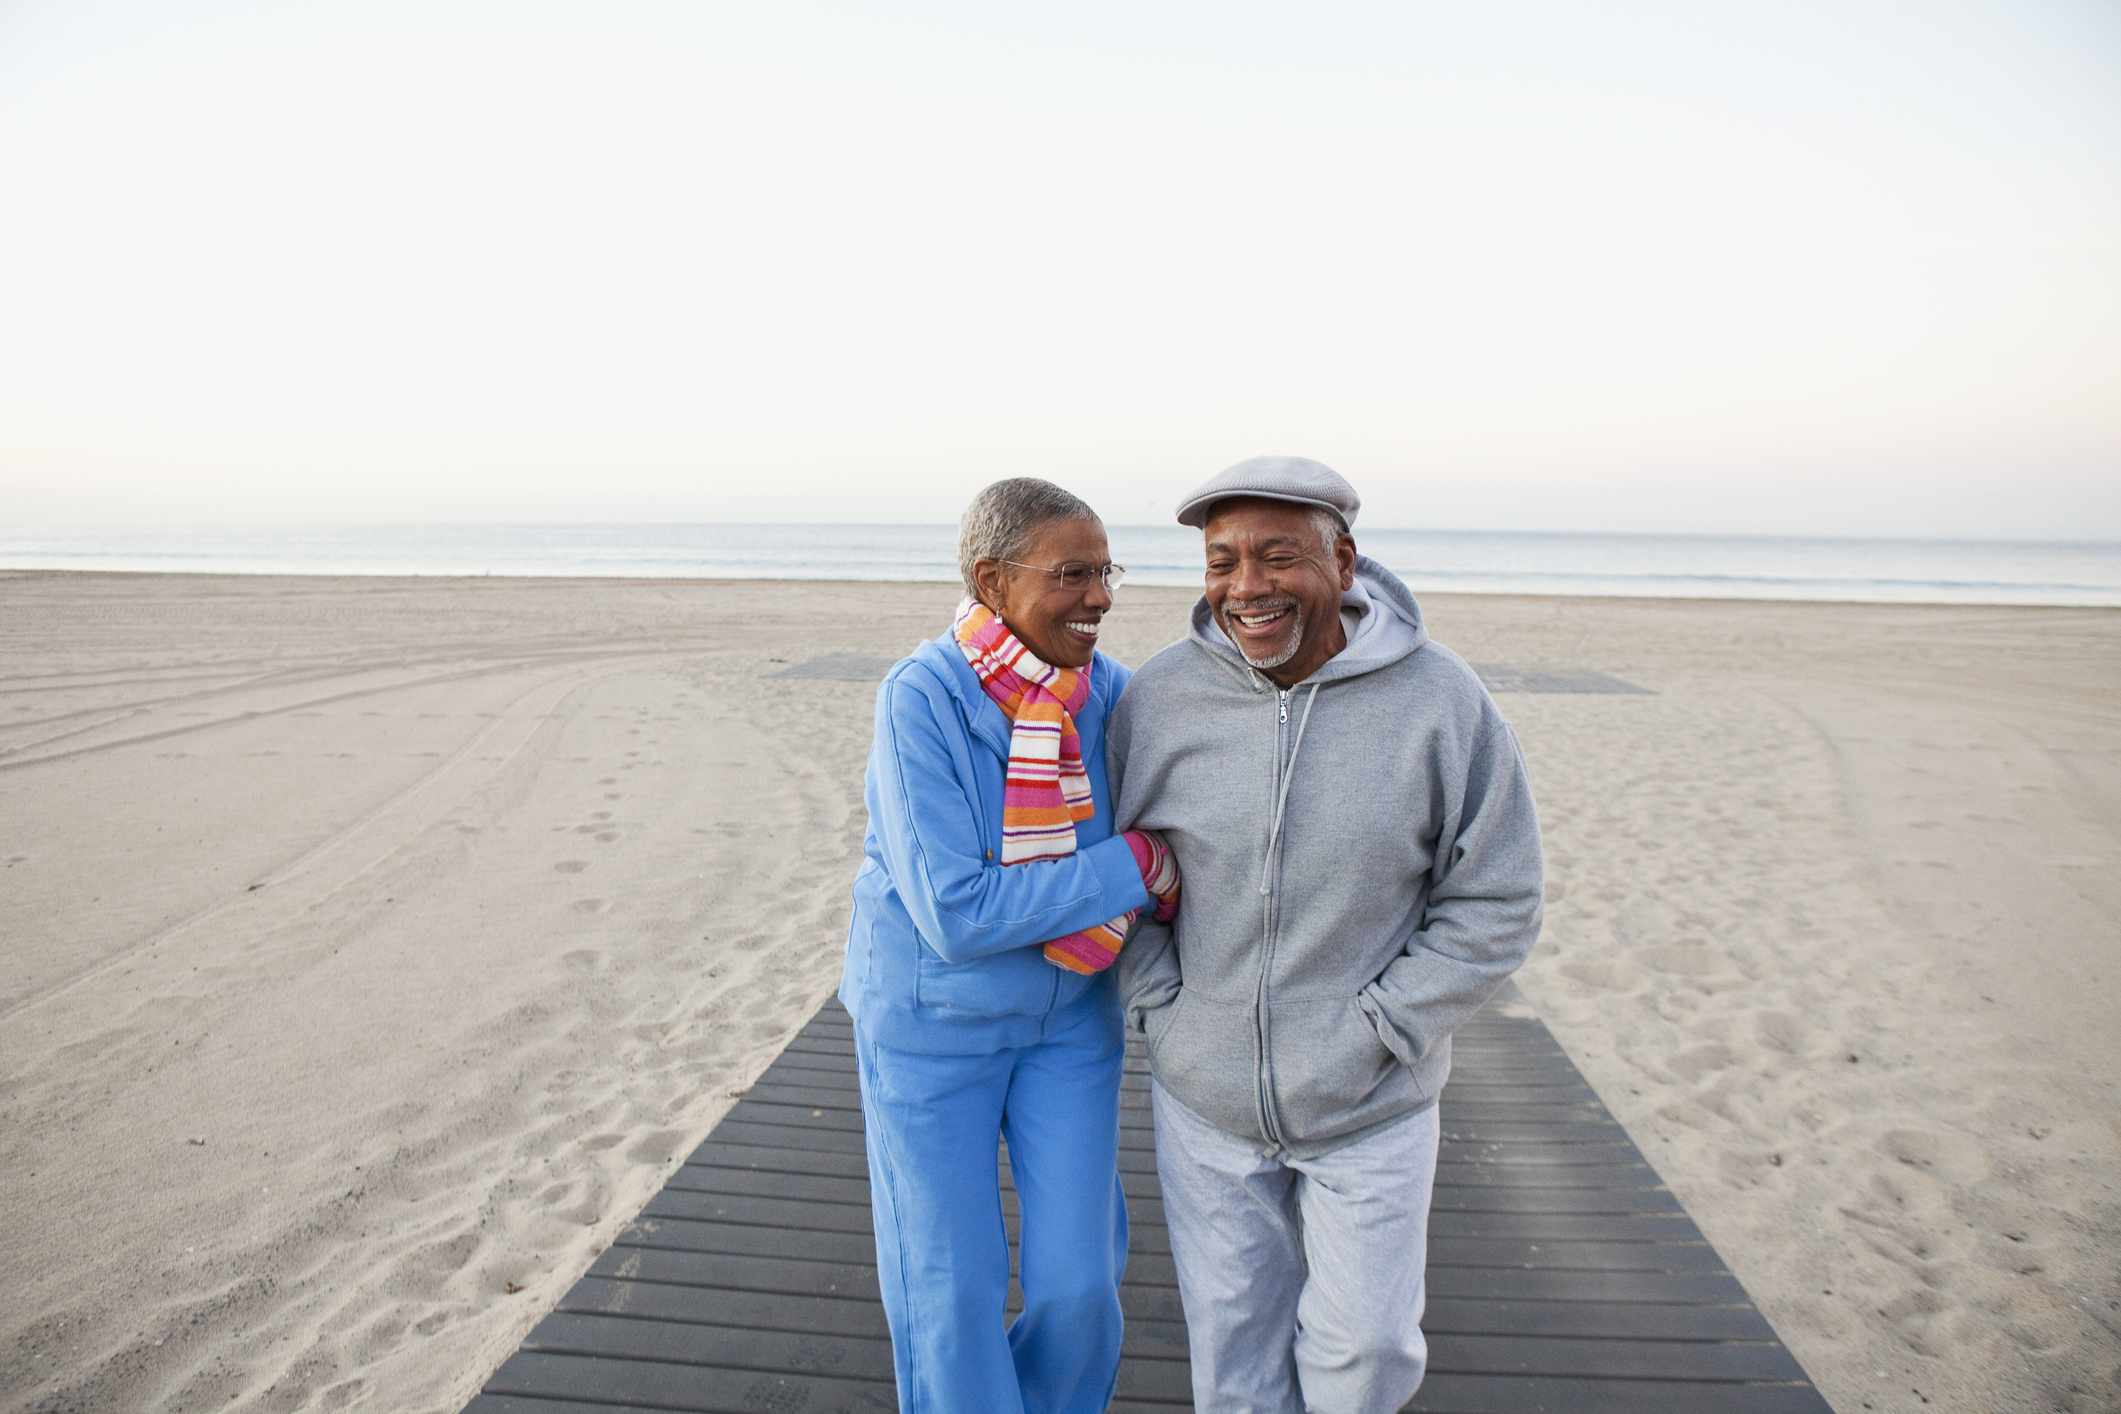 A retired couple walking at the beach